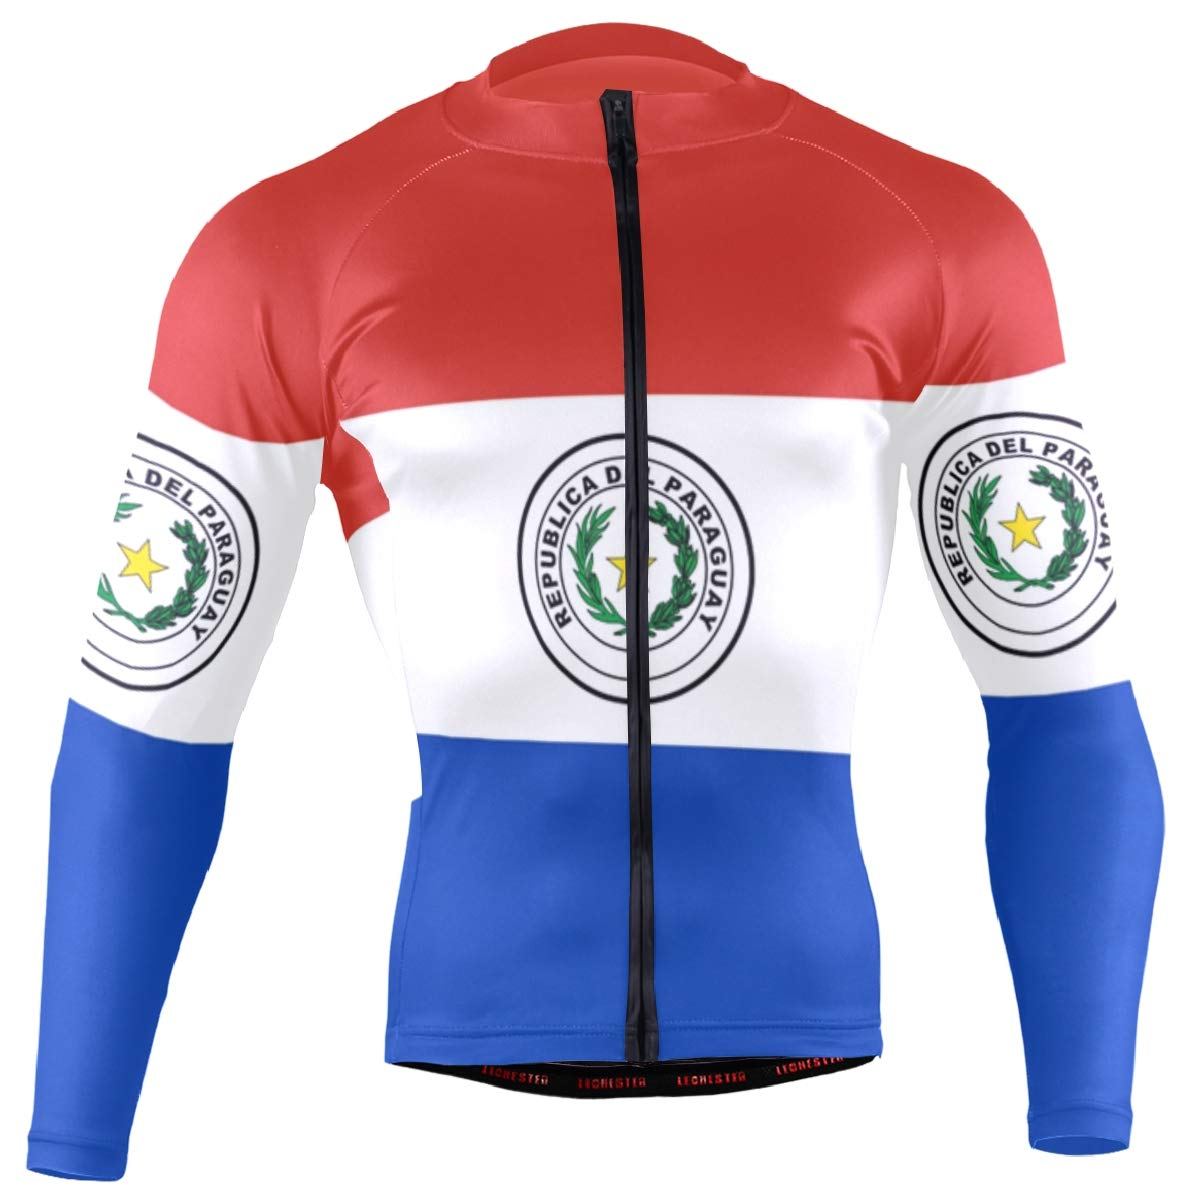 CHINEIN Men's Cycling Jersey Long Sleeve with 3 Rear Pockets Shirt Paraguay Flag by CHINEIN